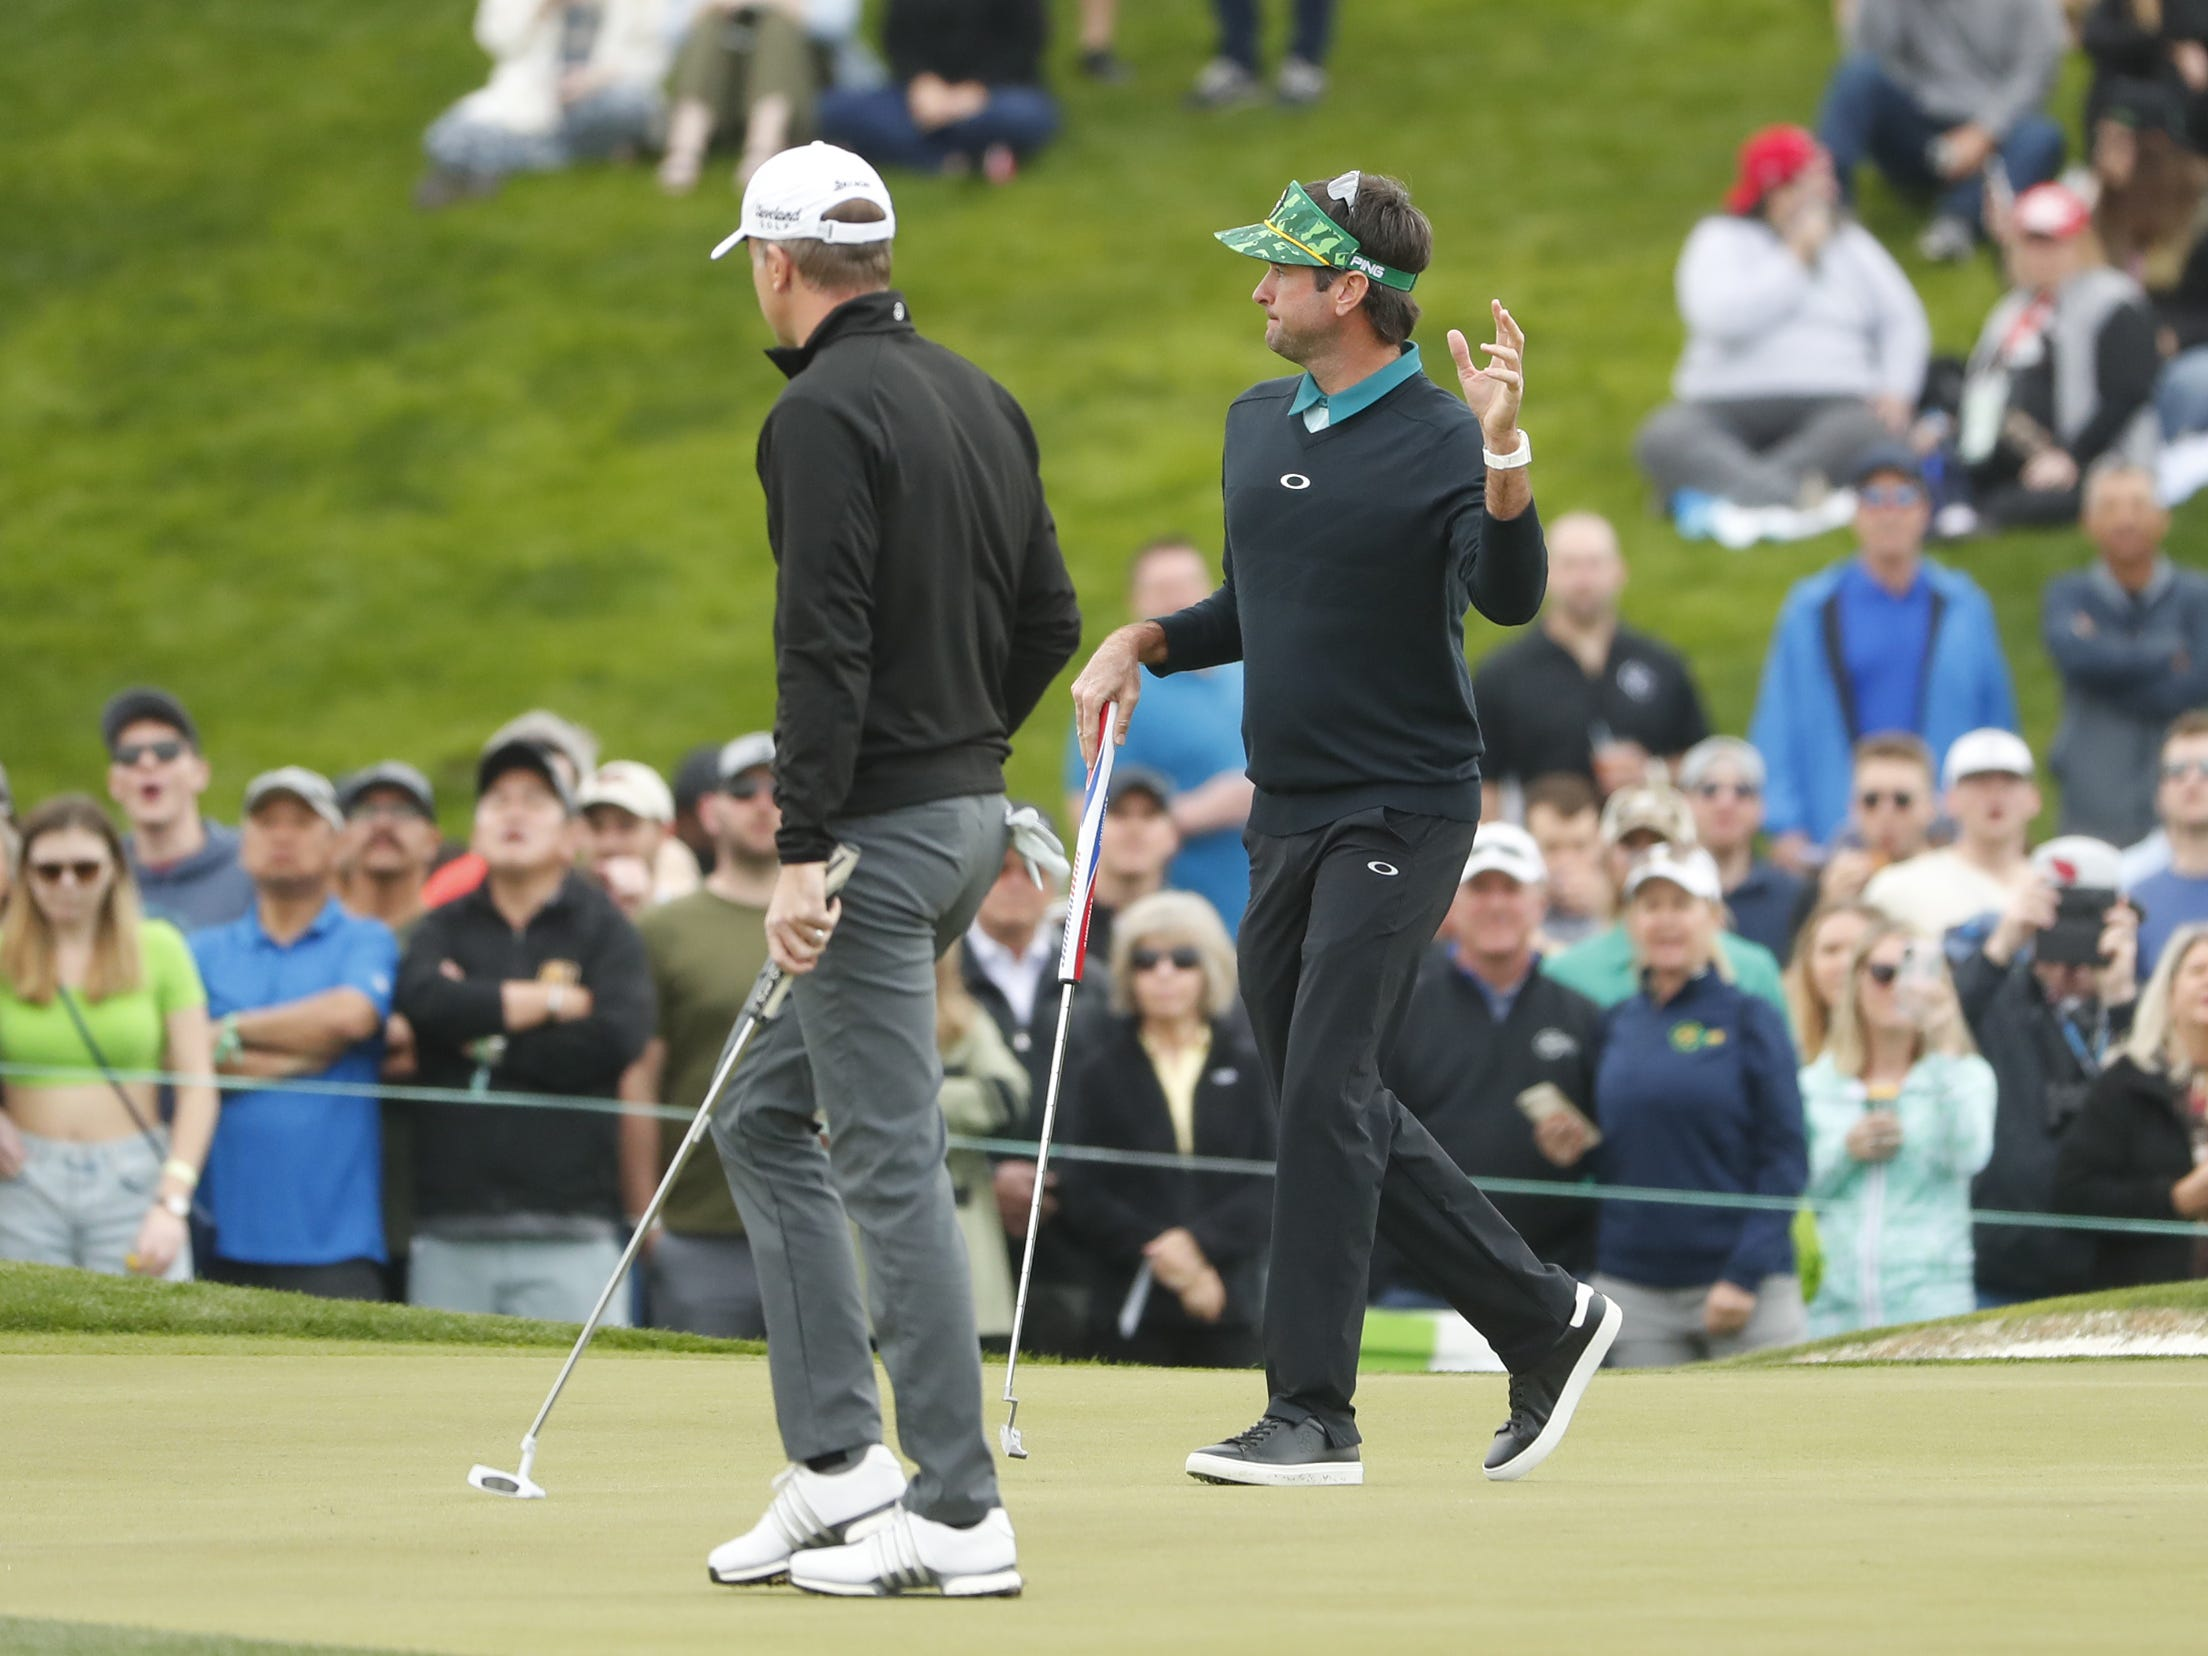 Bubba Watson waves to fans after making a birdie on the 2nd hole during the third round of the Waste Management Phoenix Open at TPC Scottsdale in Scottsdale, Ariz. on February 2, 2019.